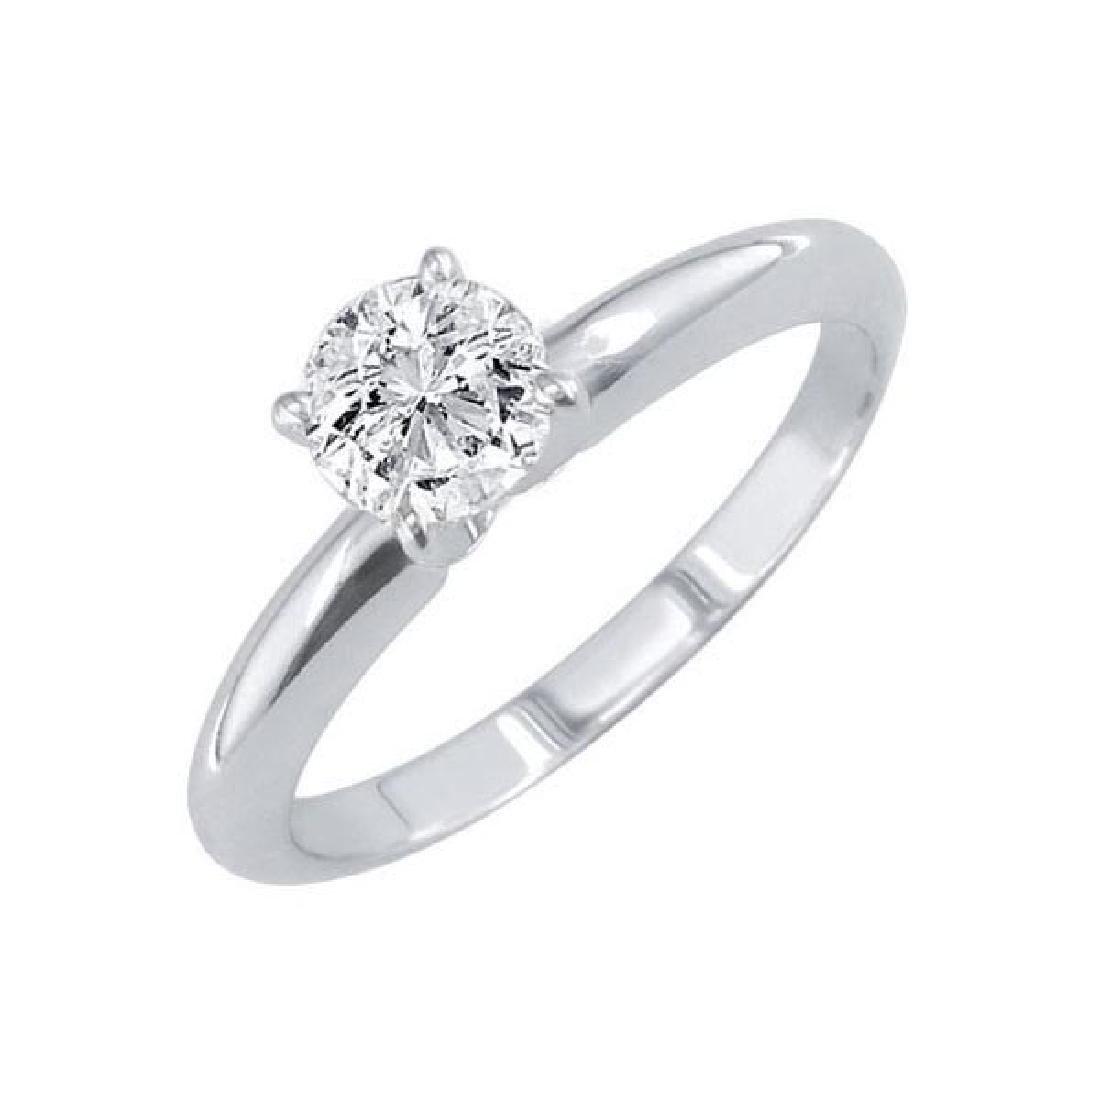 Certified 1 CTW Round Diamond Solitaire 14k Ring I/SI2